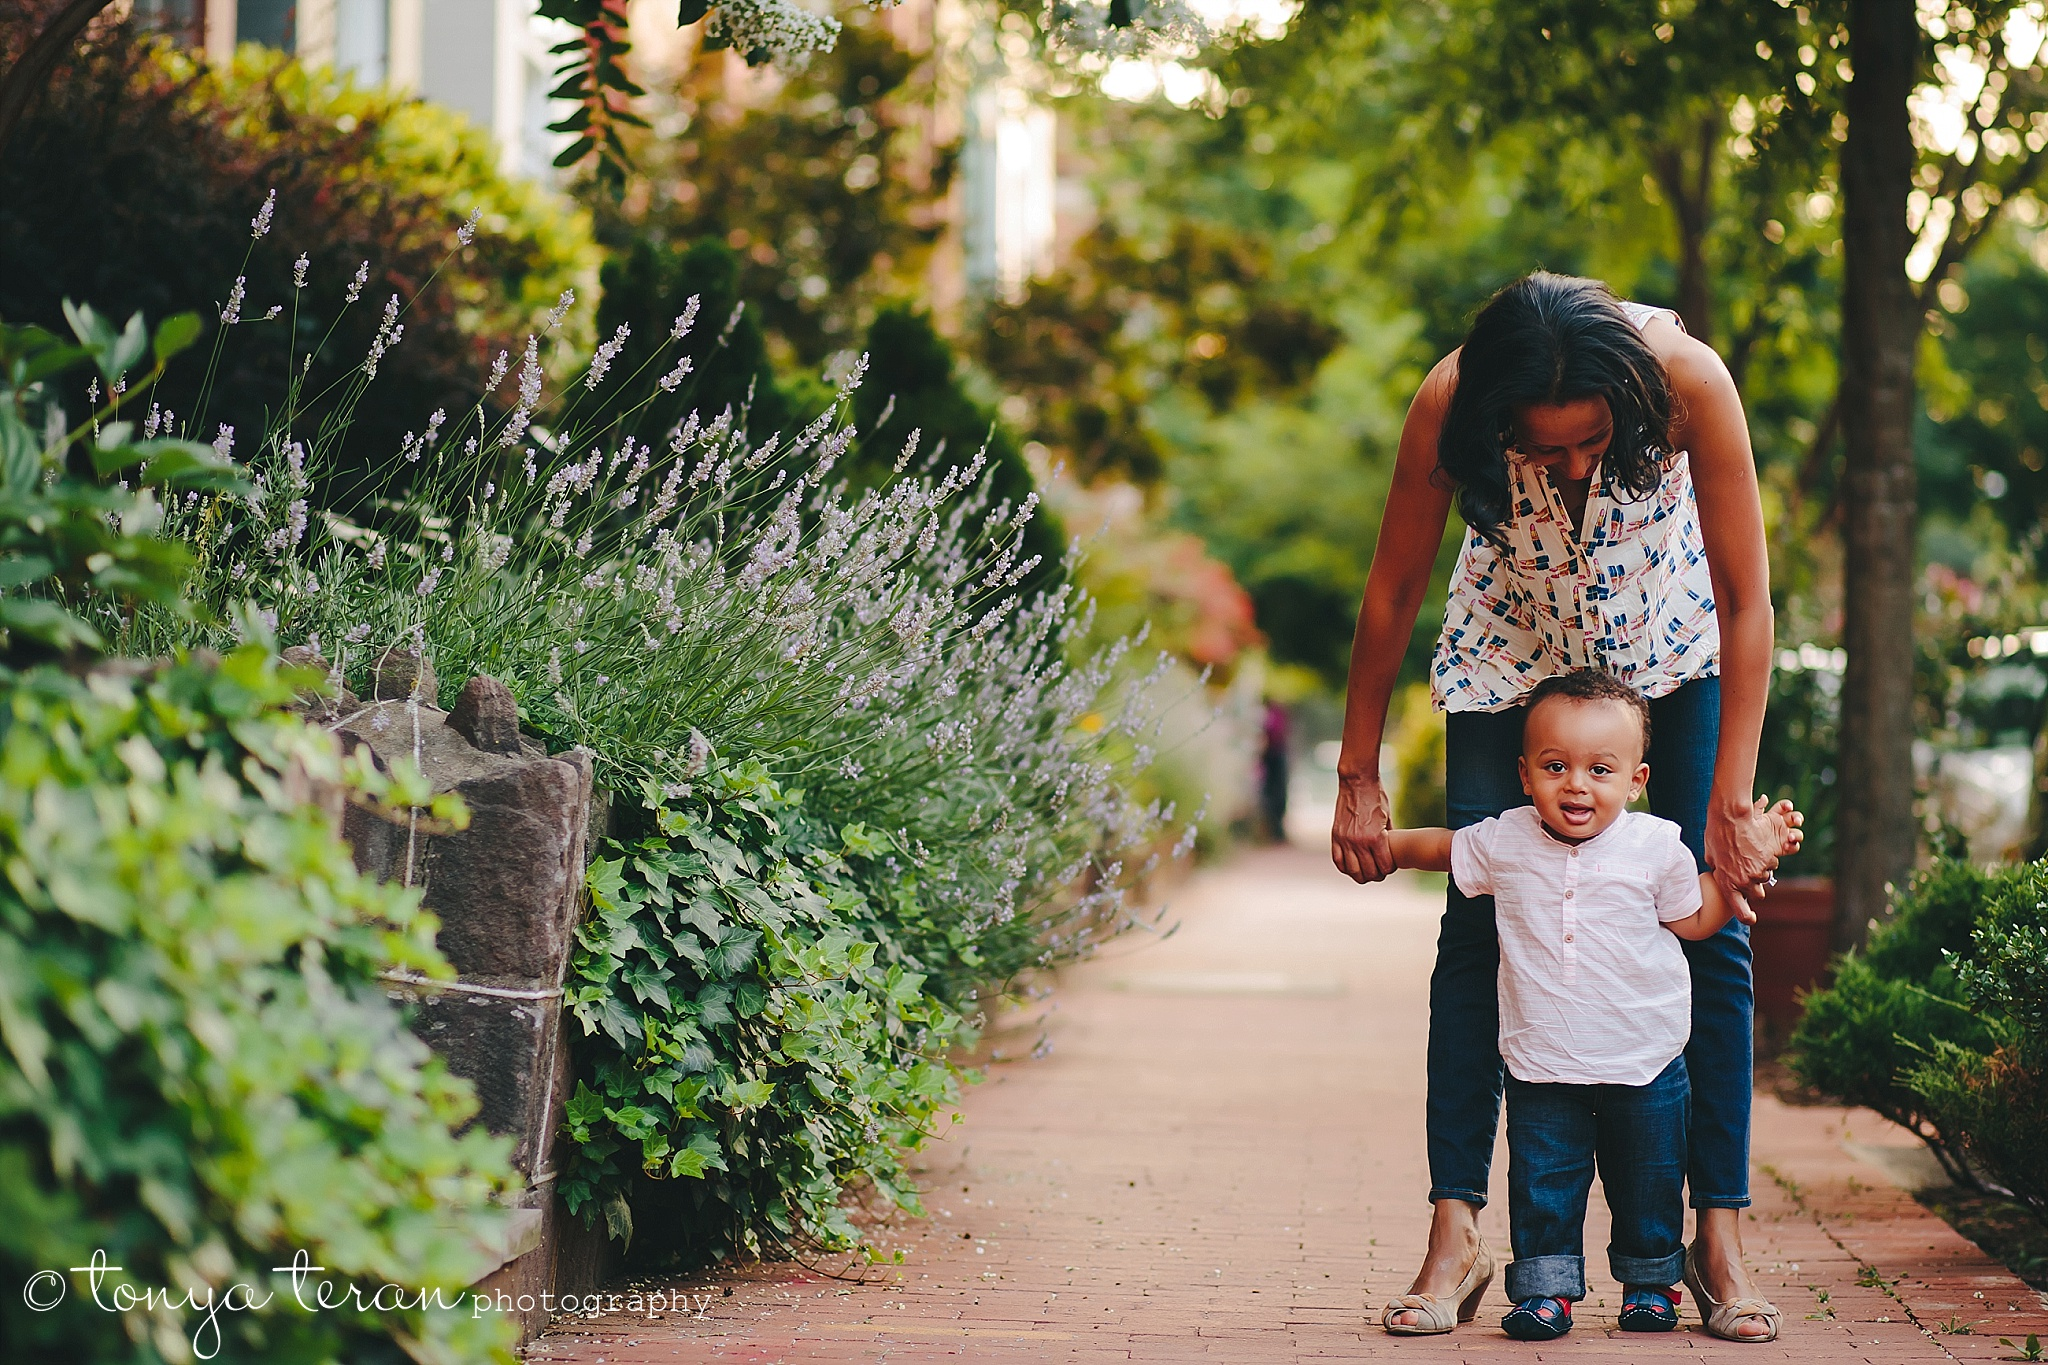 1st birthday Lifestyle Photo Session | Tonya Teran Photography, Washington, DC Newborn, Baby, and Family Photographer